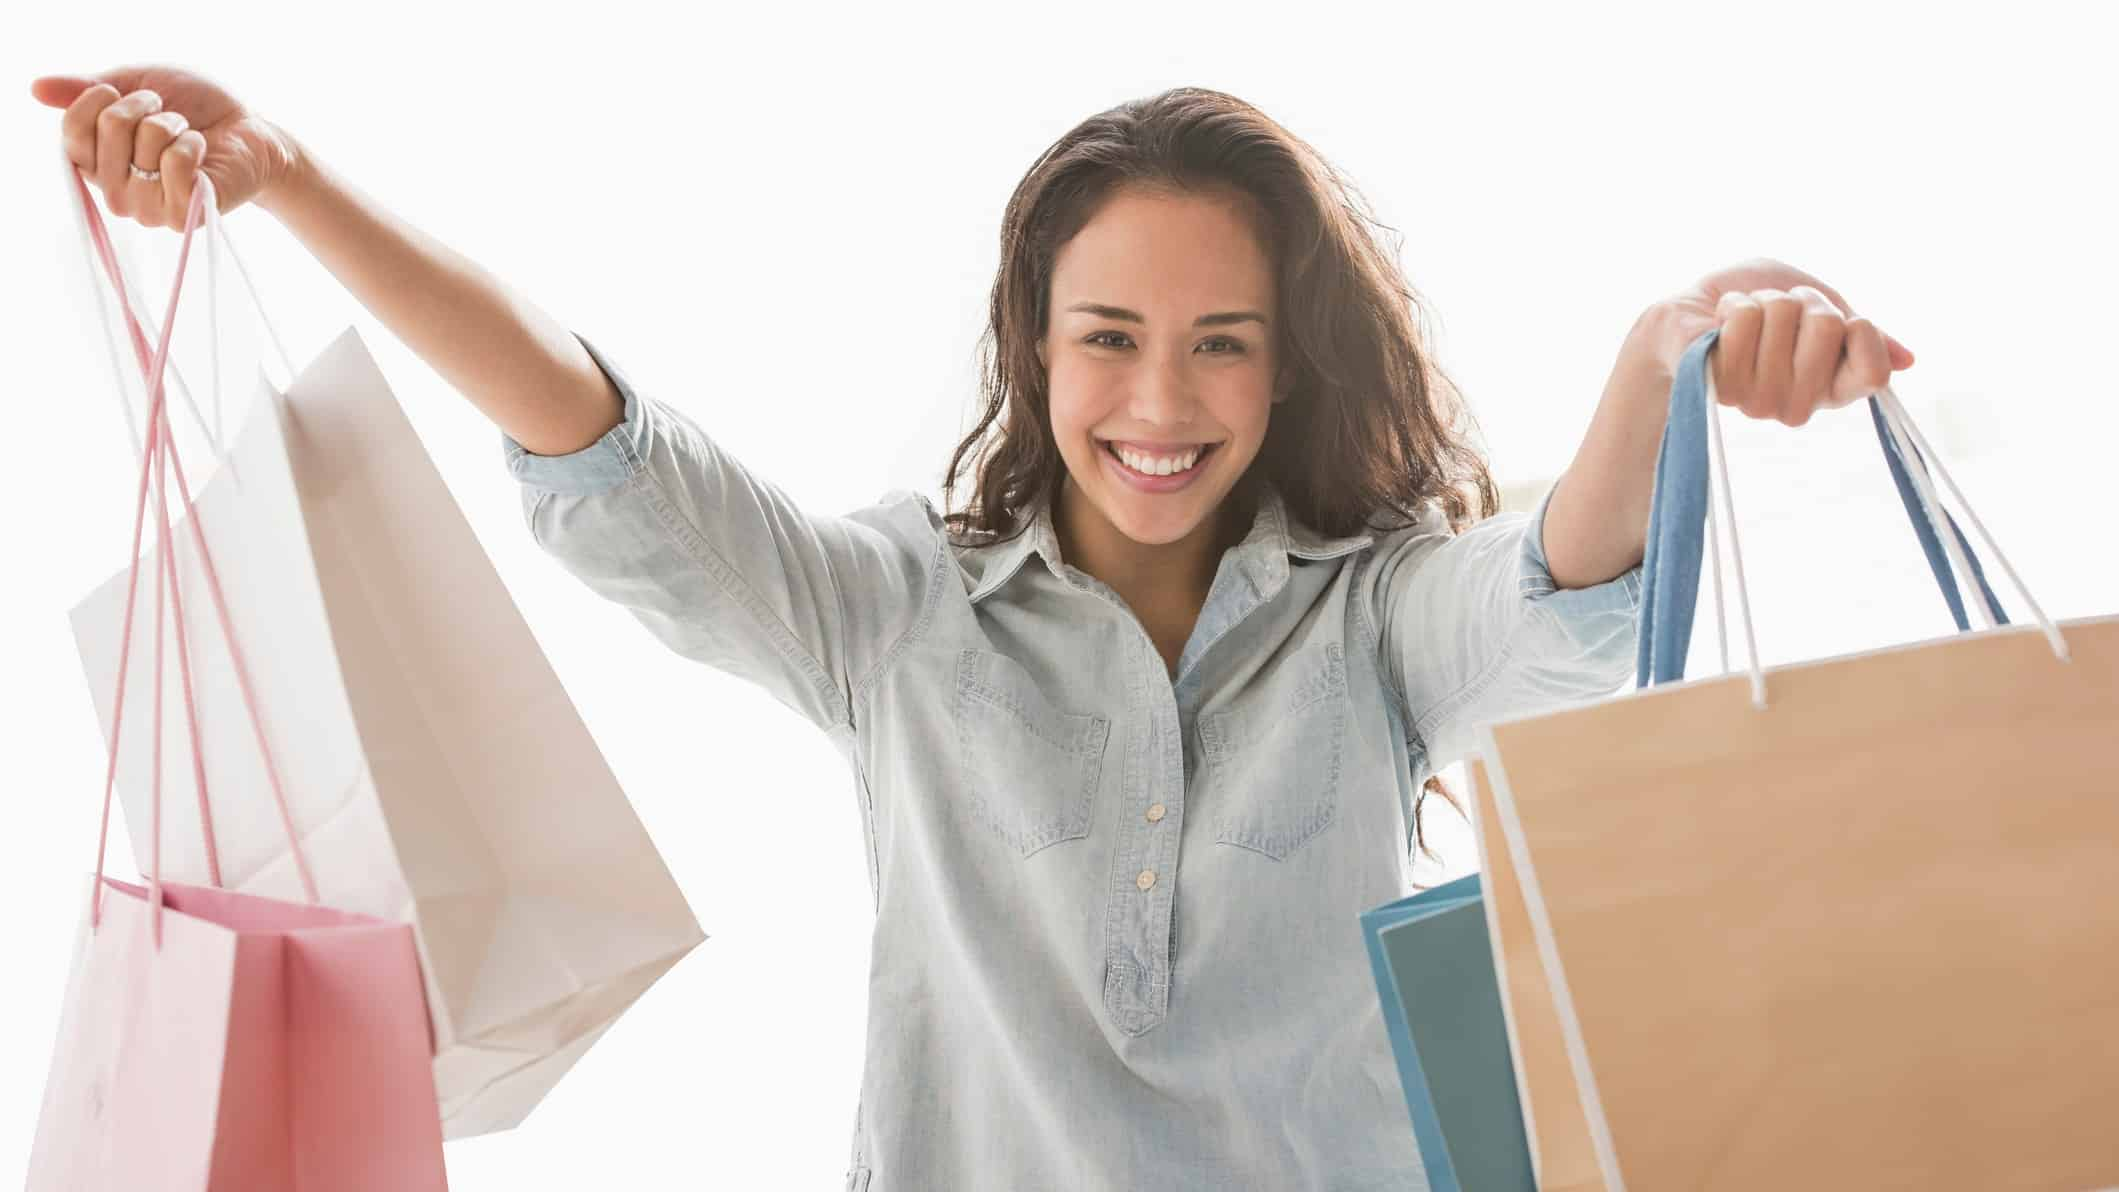 A happy shopper lifts her bags high, indicating a rising share price in ASX retail companies